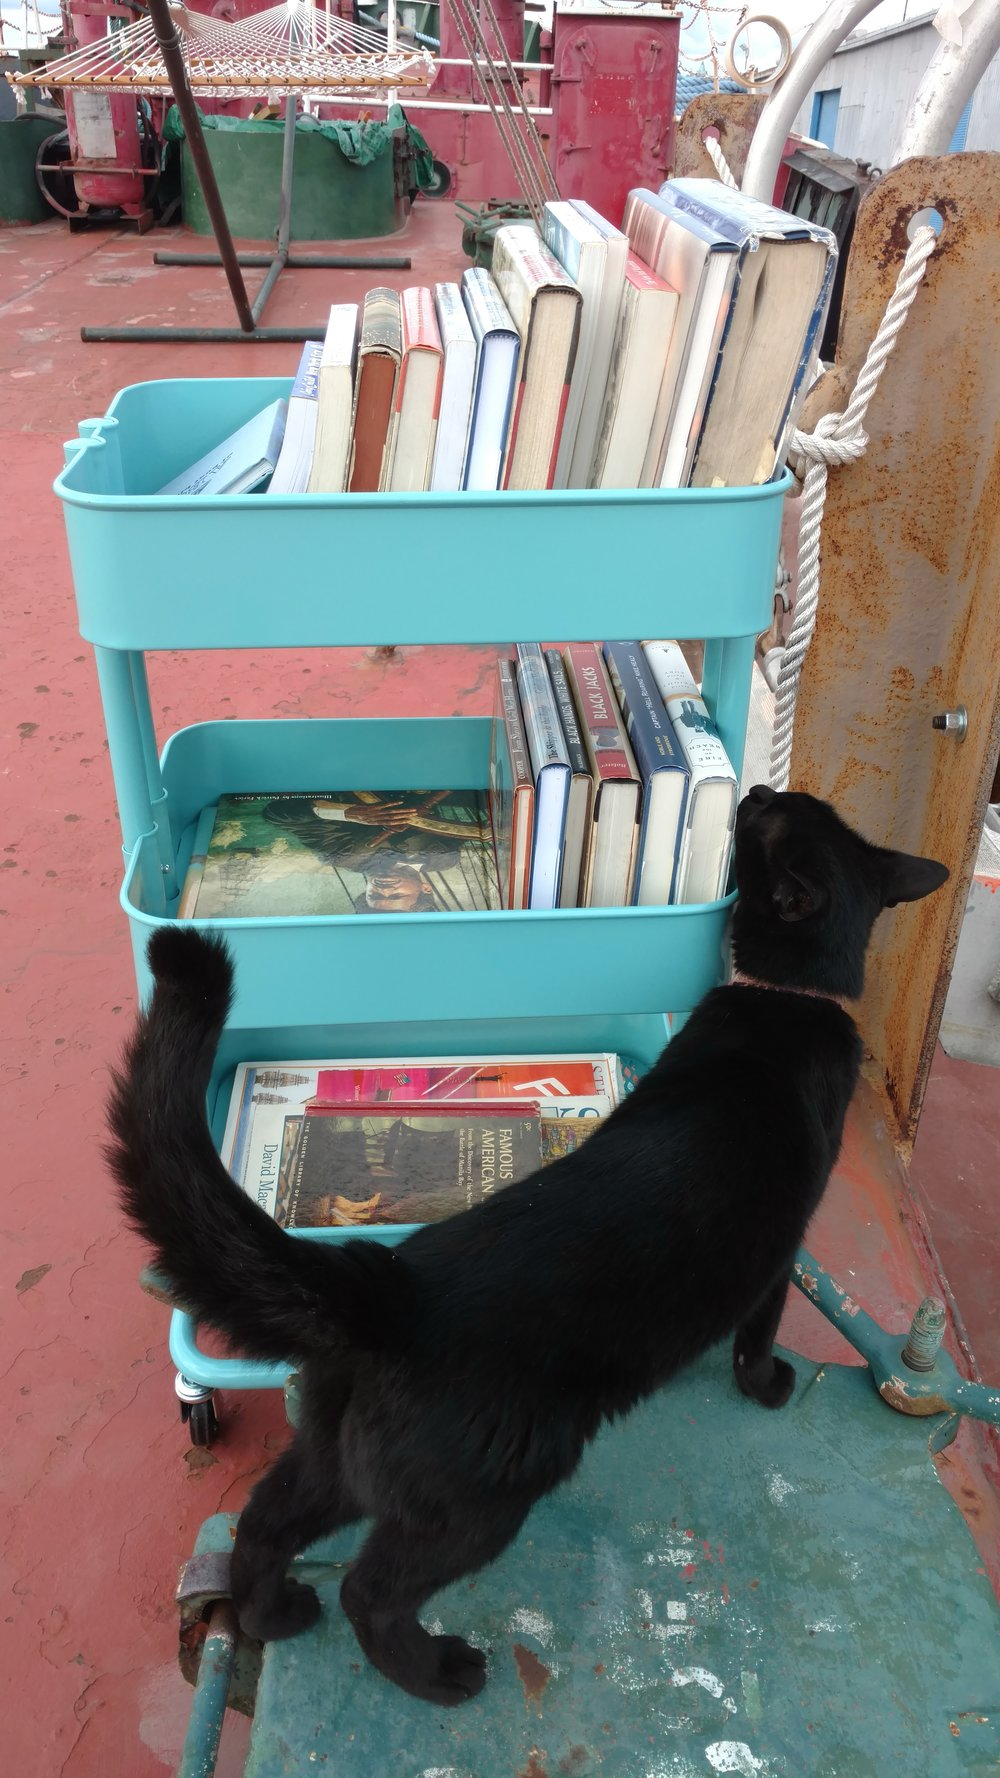 Chiclet checks out a book